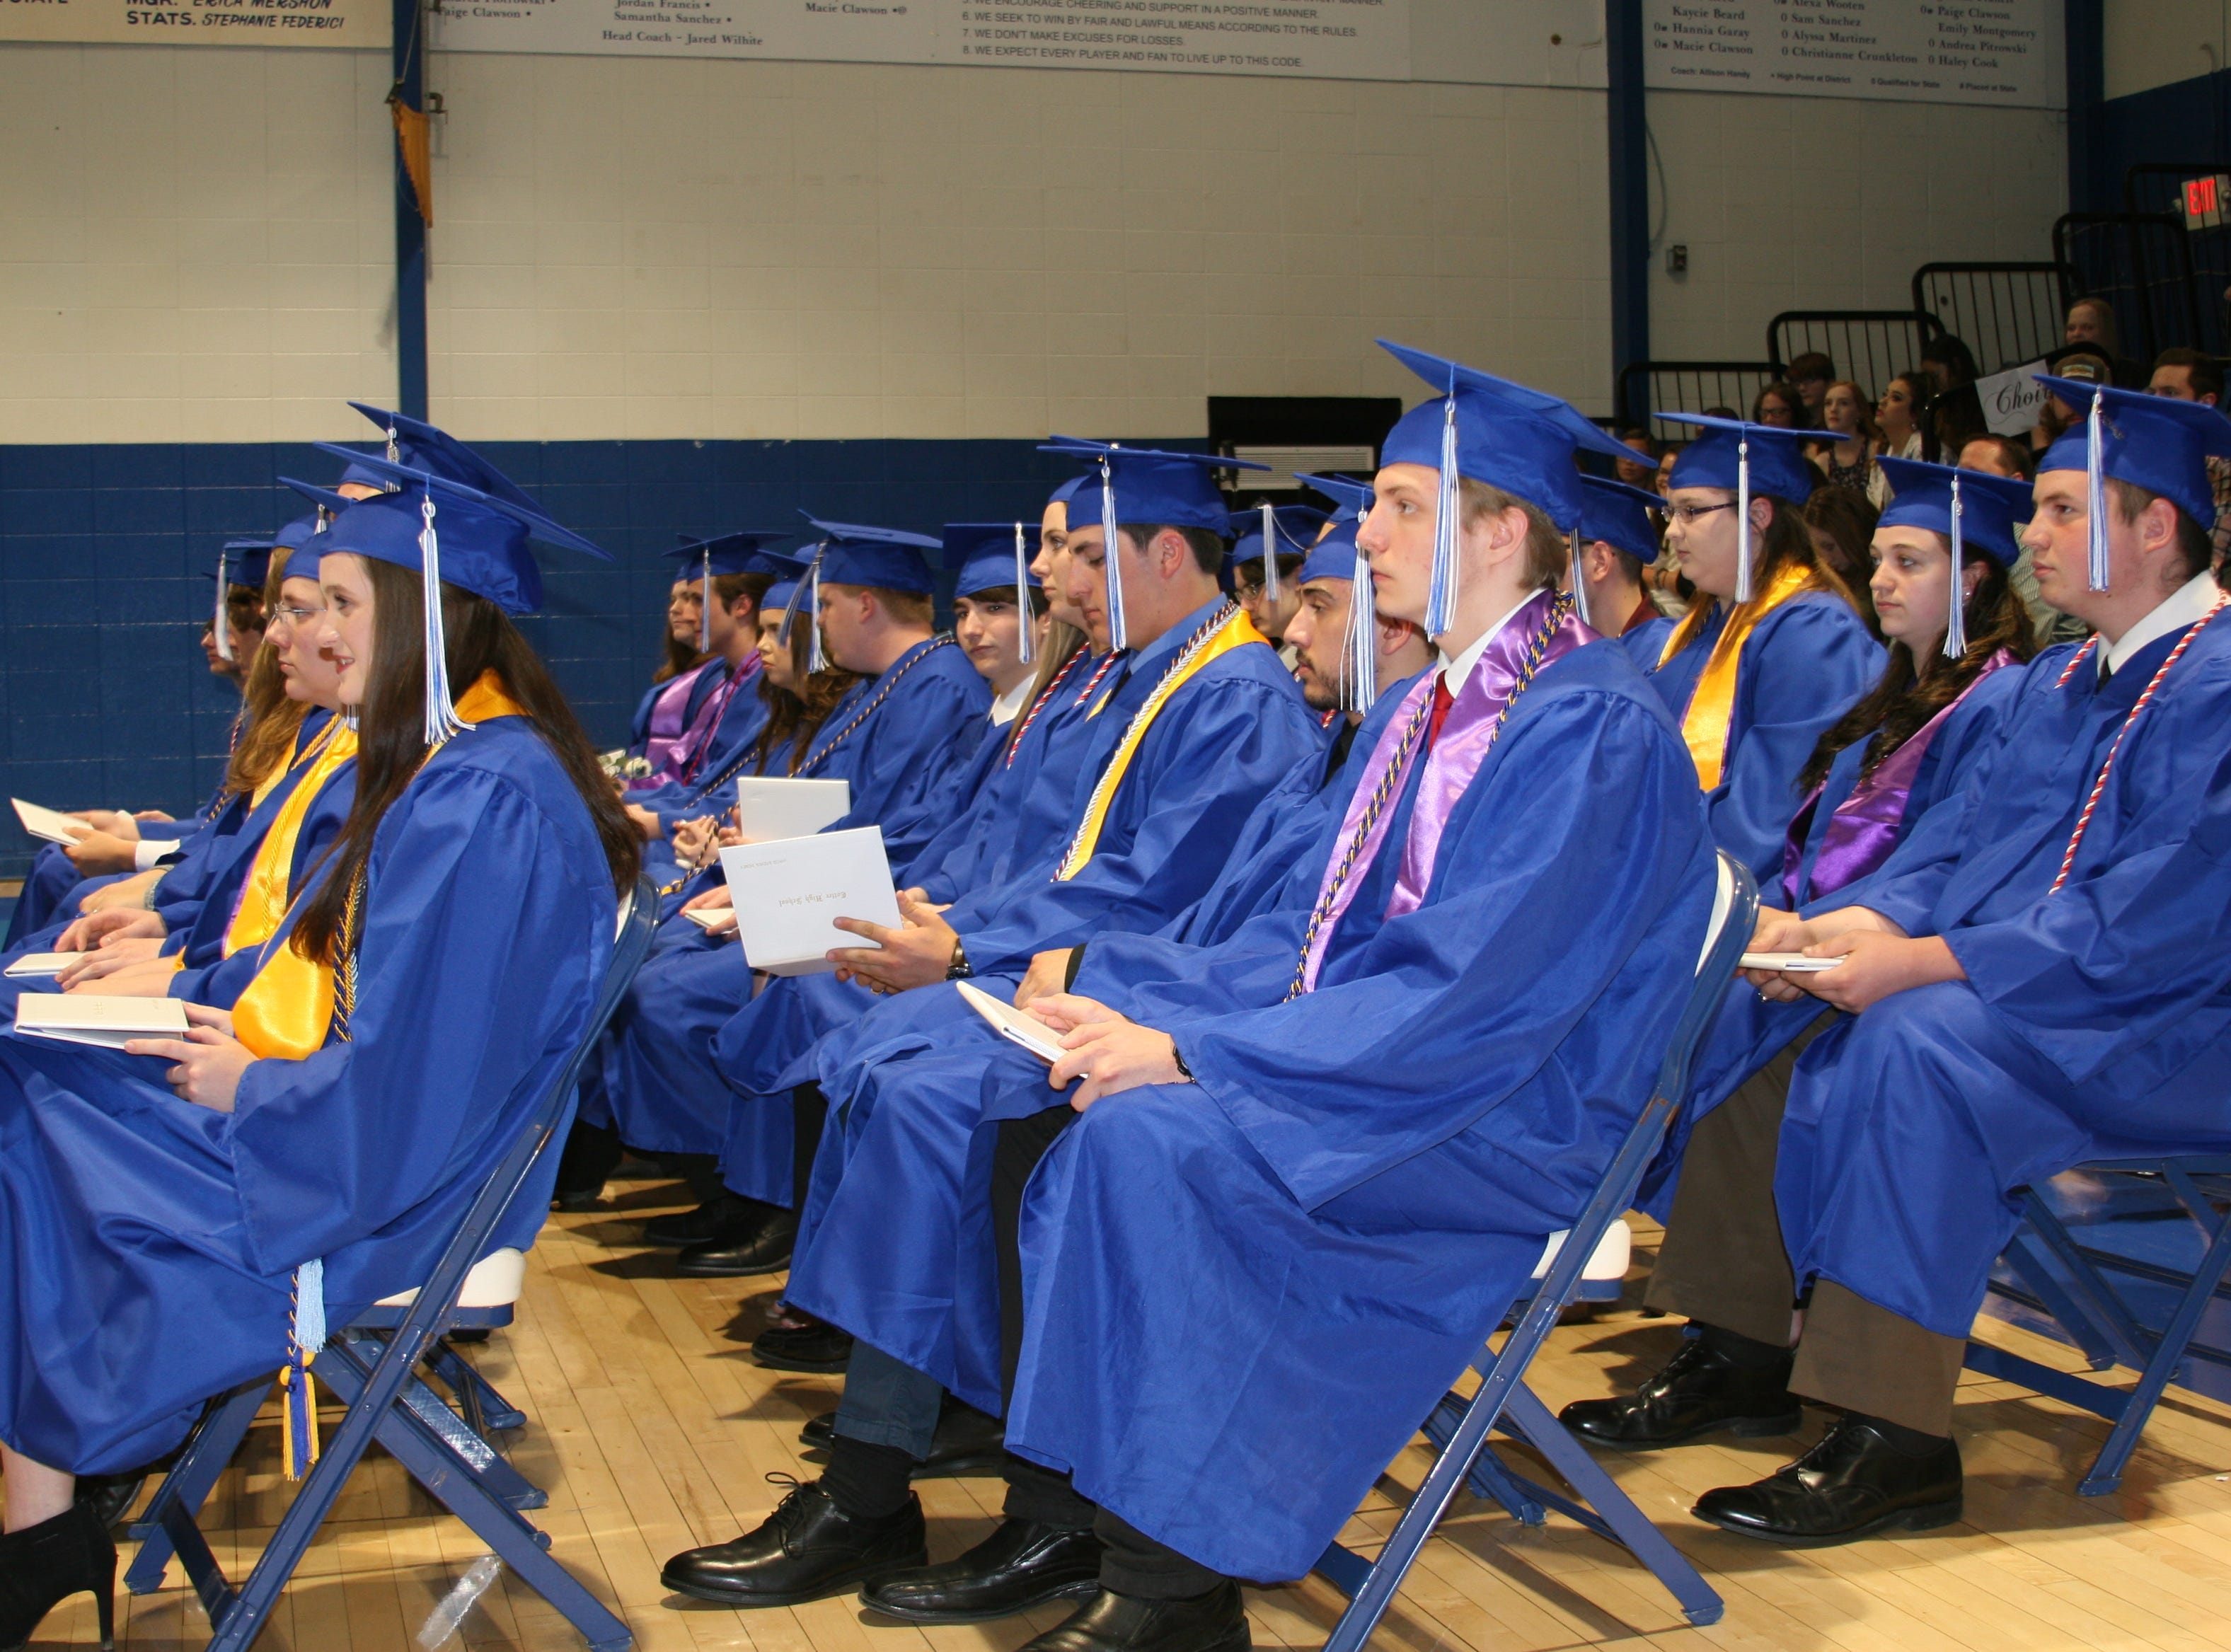 Students breathe a sigh of relief after receiving their 2019 Cotter High School diplomas.